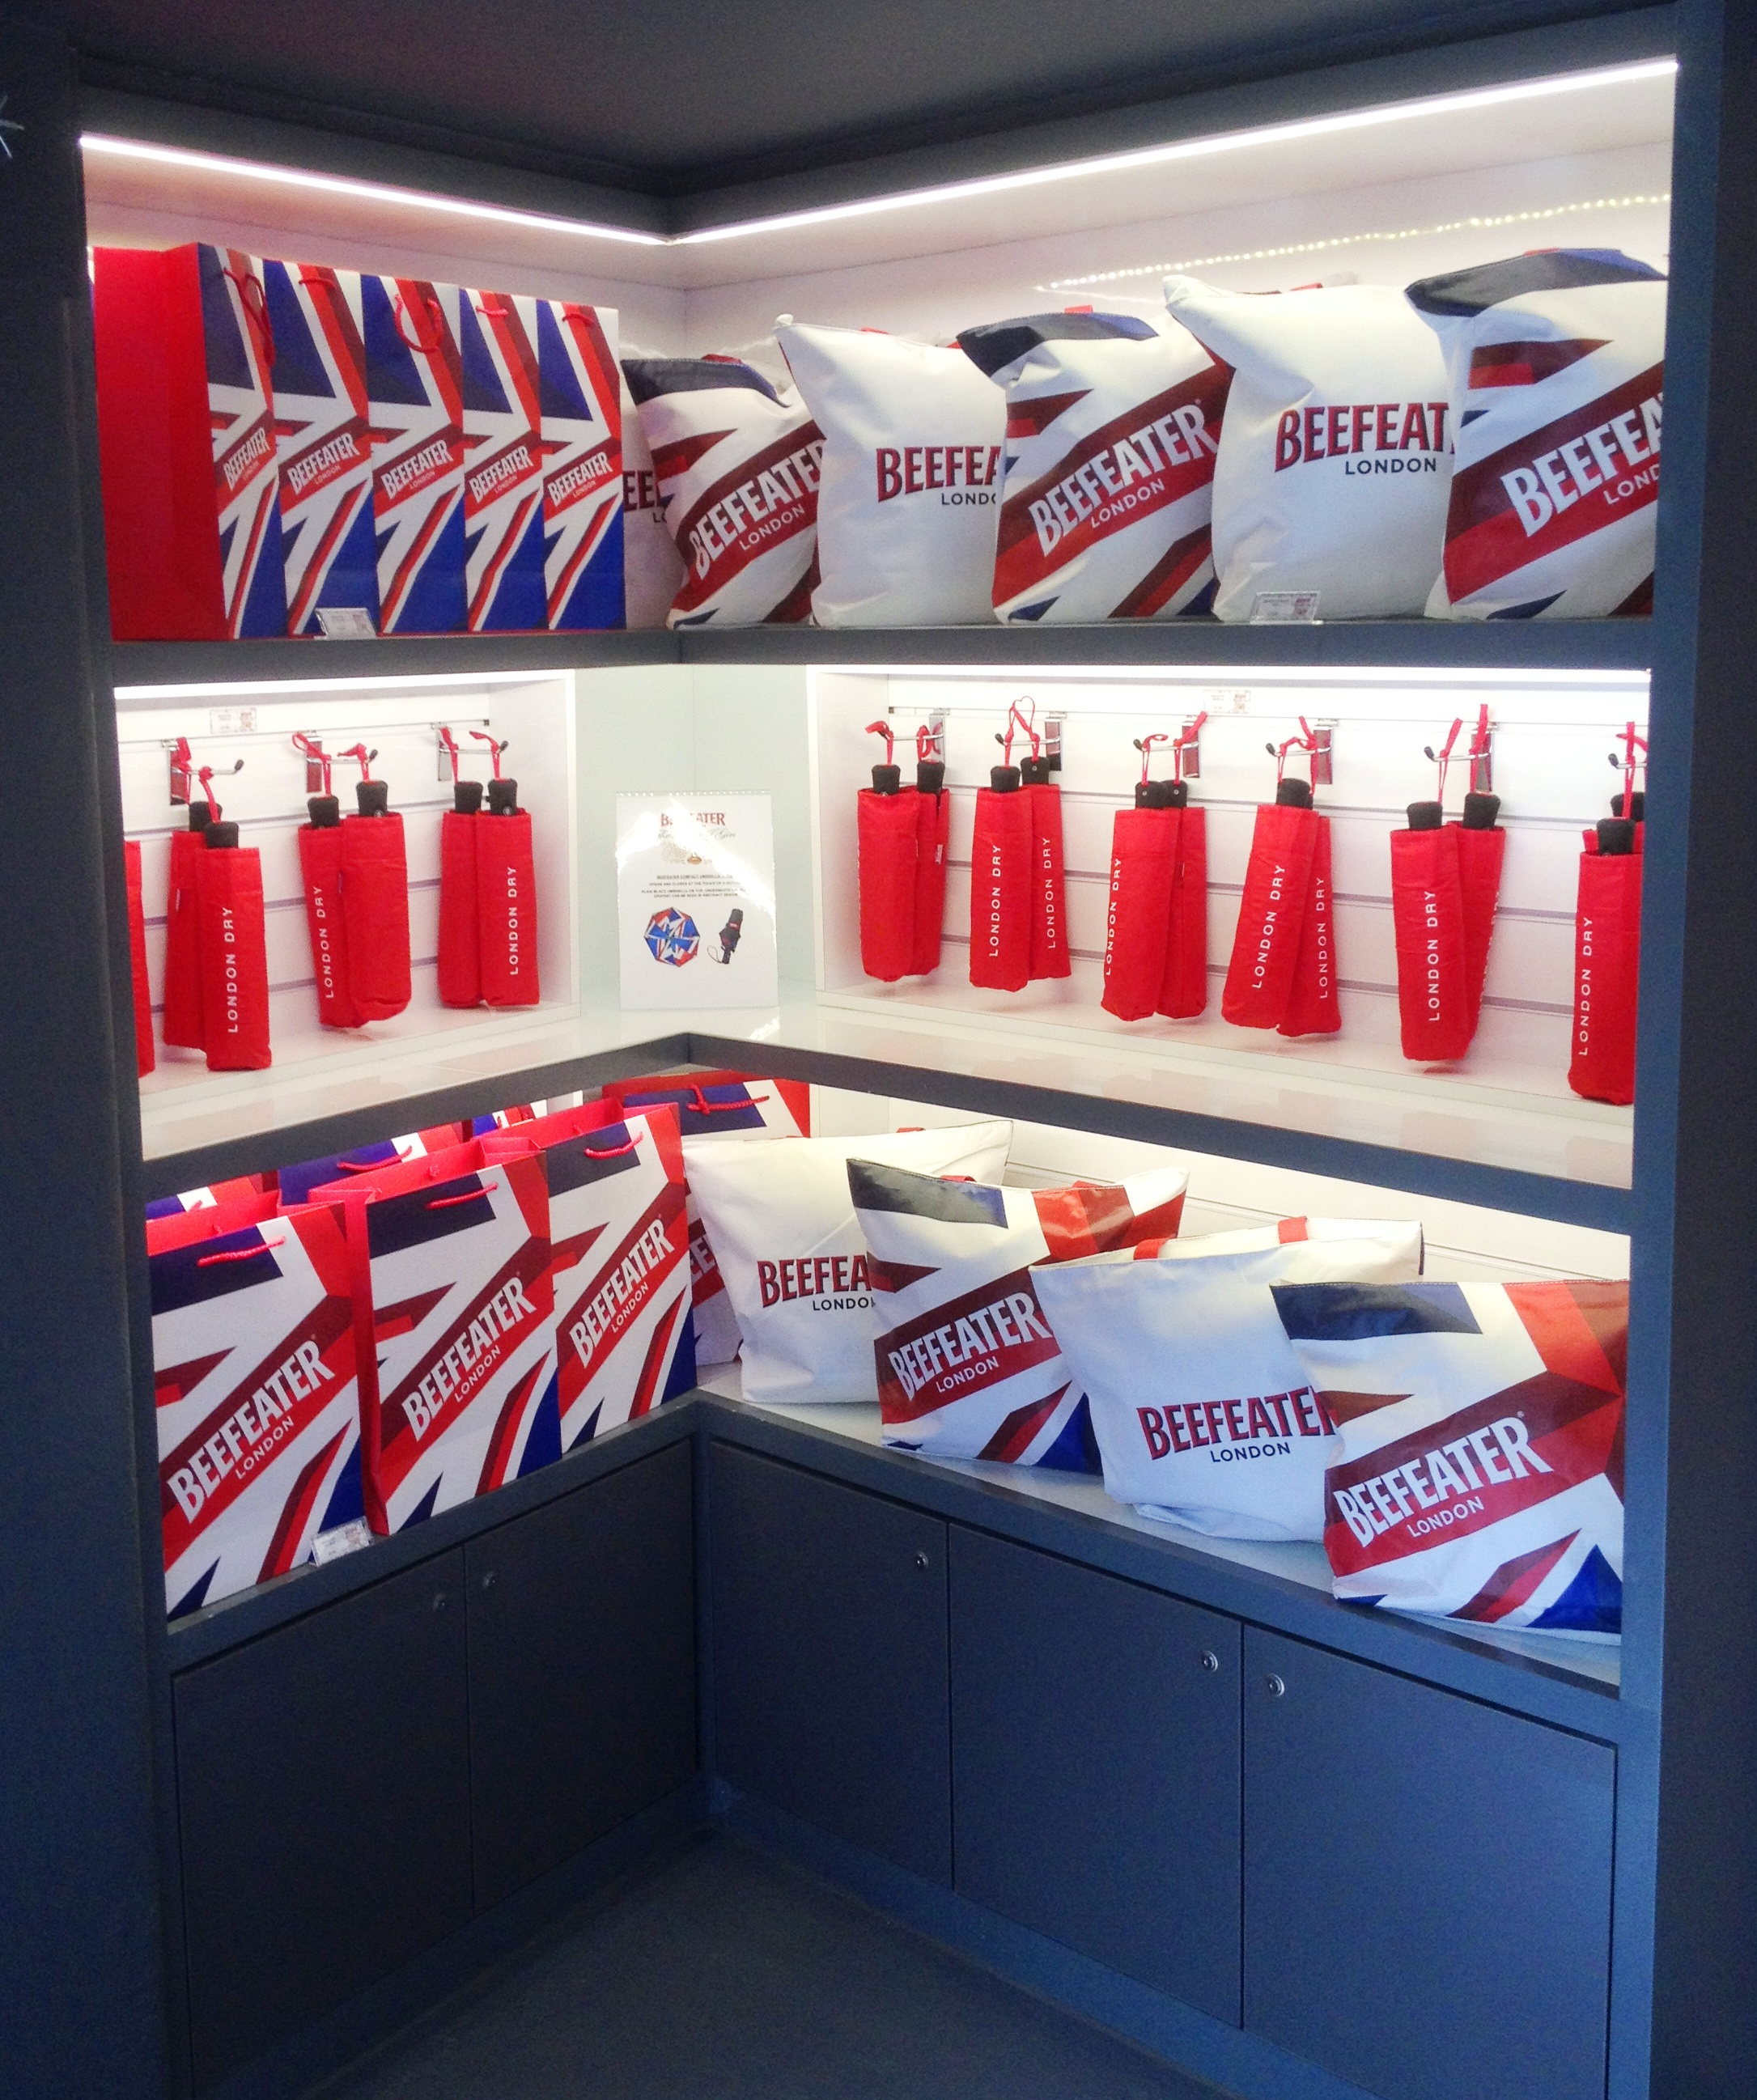 Beefeater patriotic gift shop - kenningtonrunoff.com